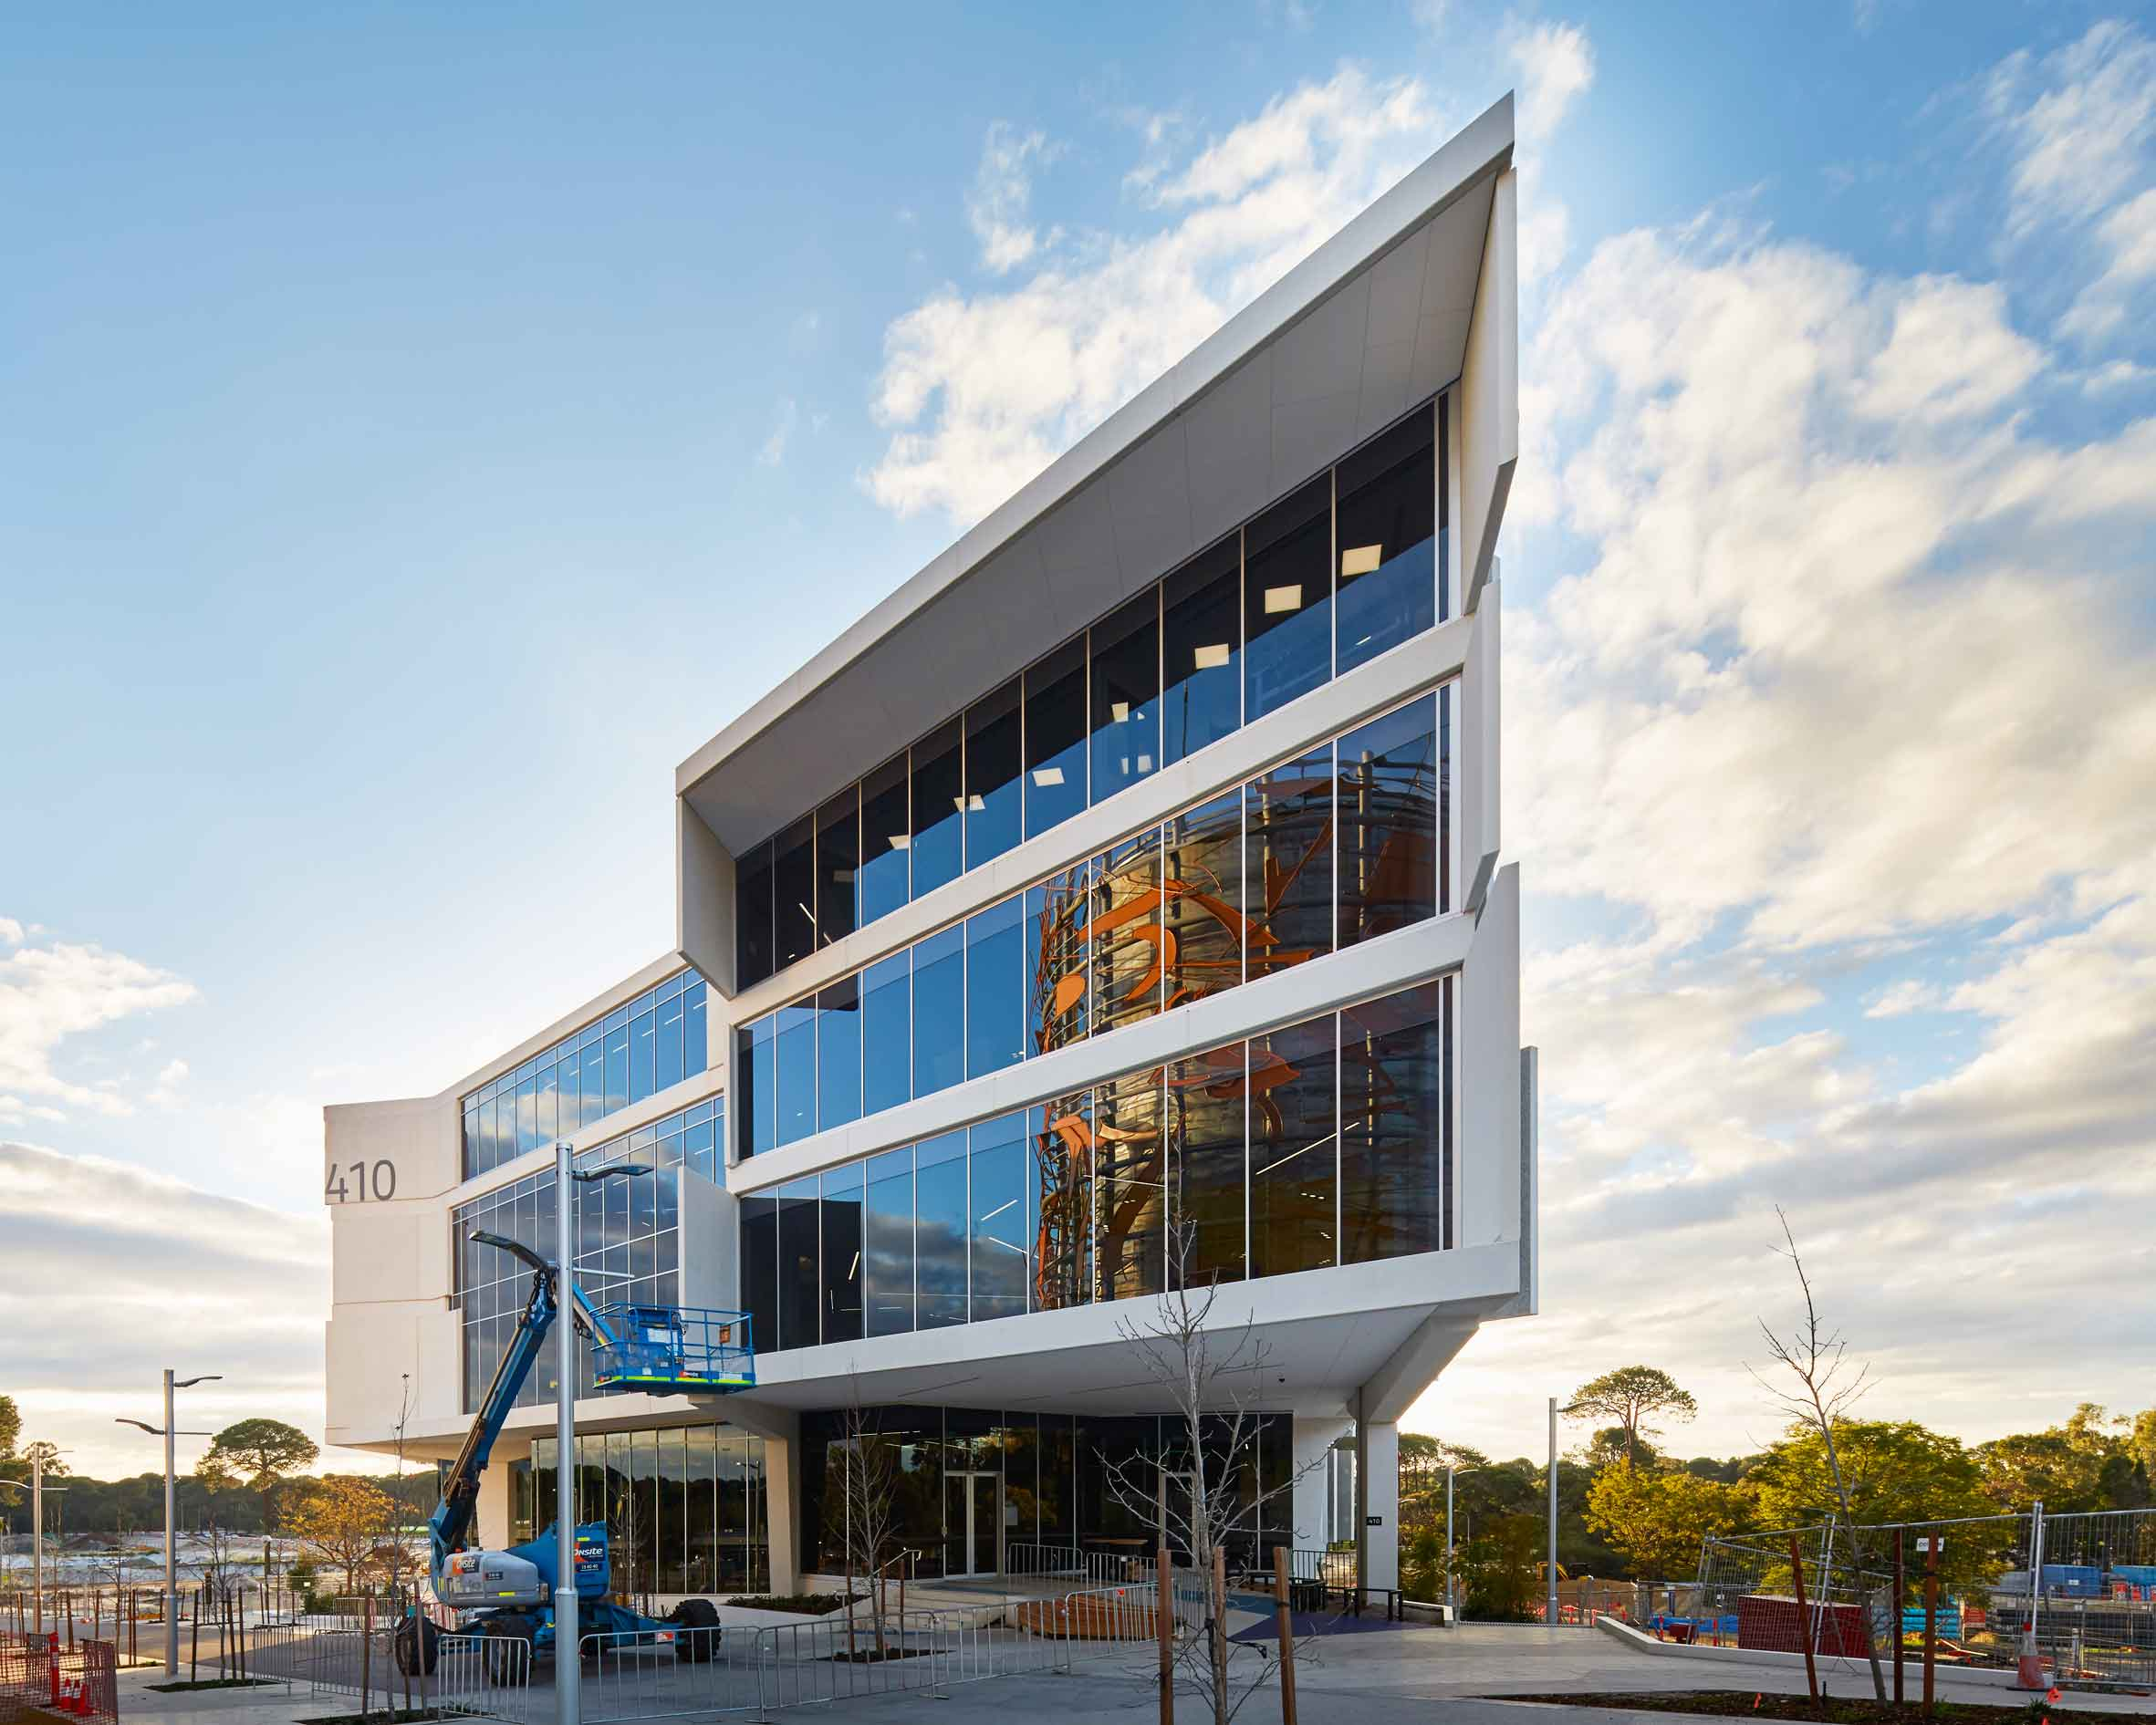 Curtin University Medical School : Image 3